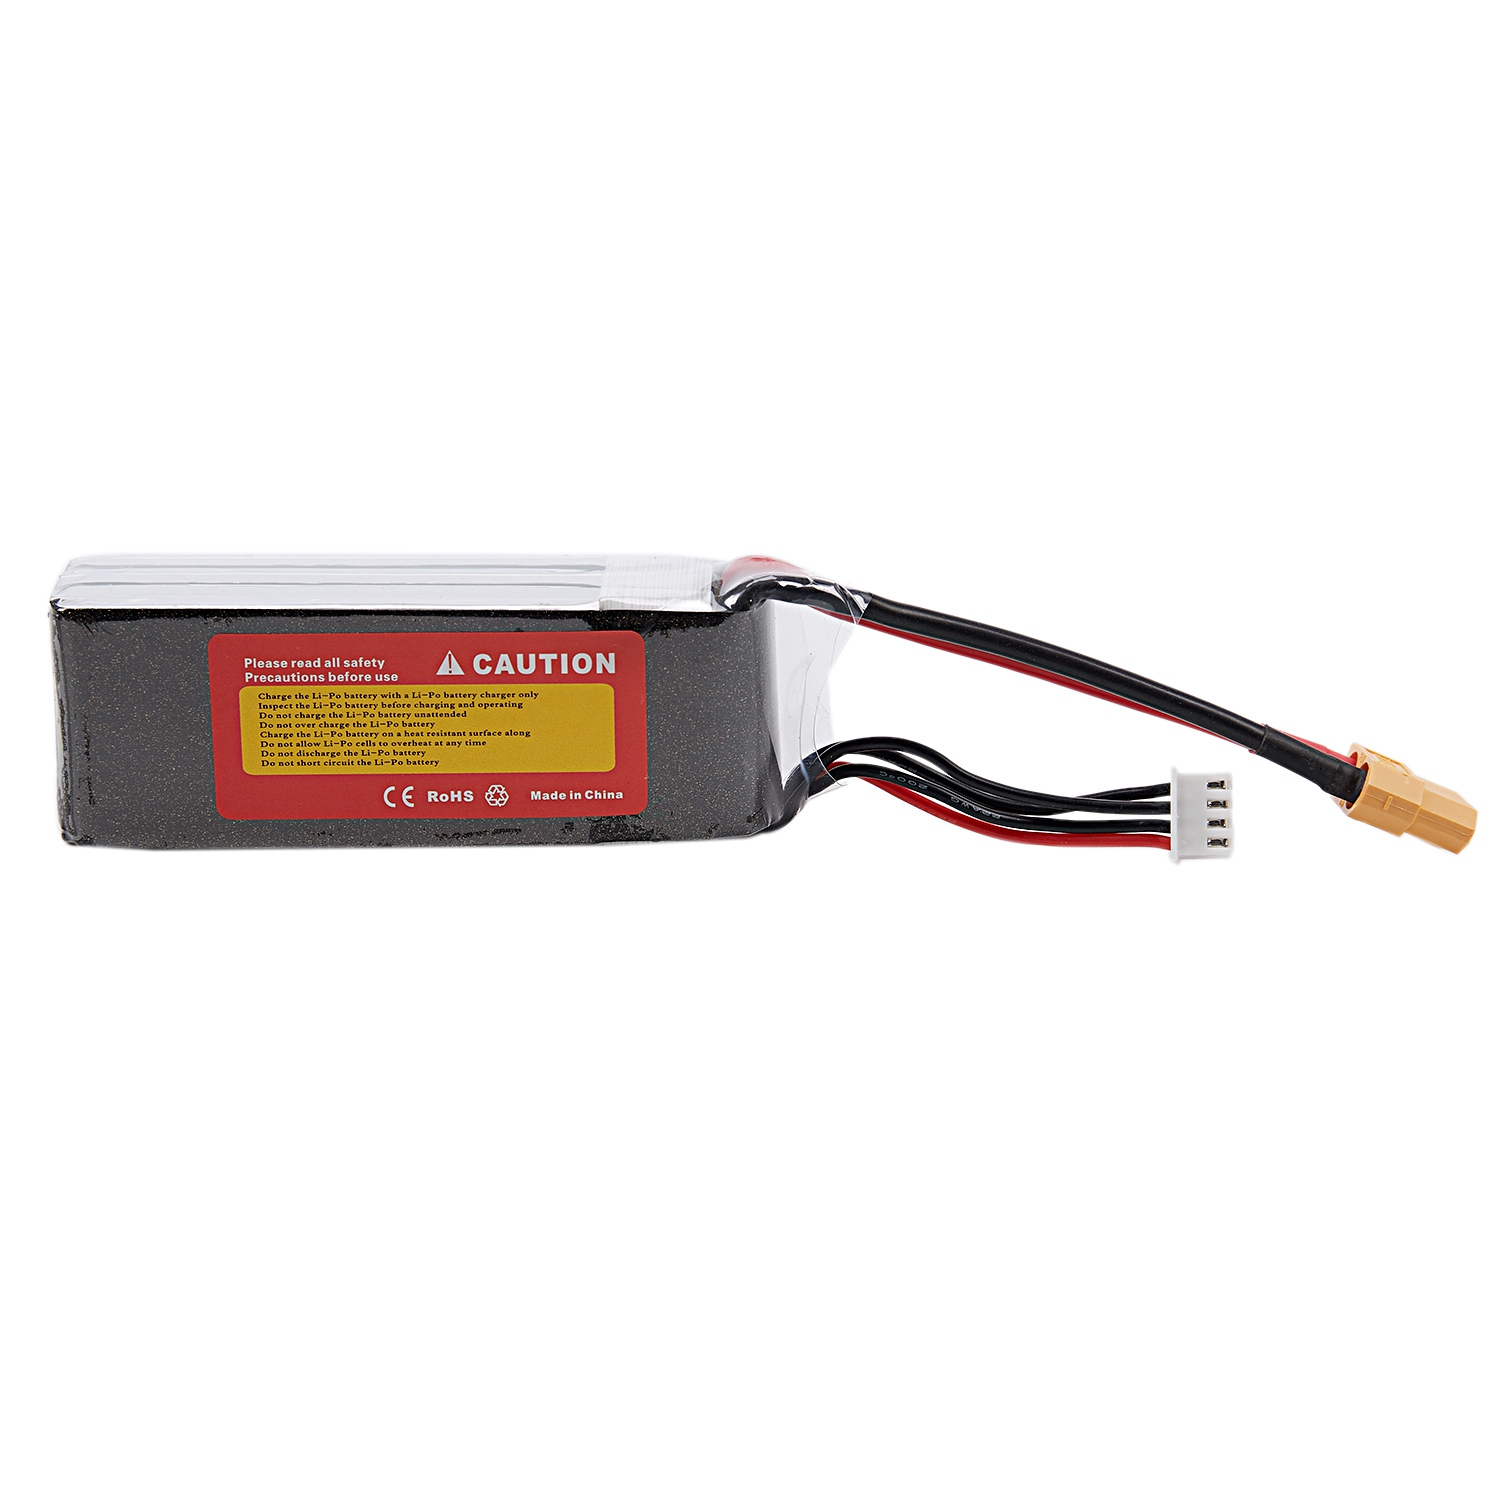 Zop Power <font><b>Lipo</b></font> Battery 11.1V <font><b>1800Mah</b></font> 65C <font><b>3S</b></font> <font><b>Lipo</b></font> Battery Xt60 Plug For Rc Quadcopter Drone Helicopter Car Airplane image